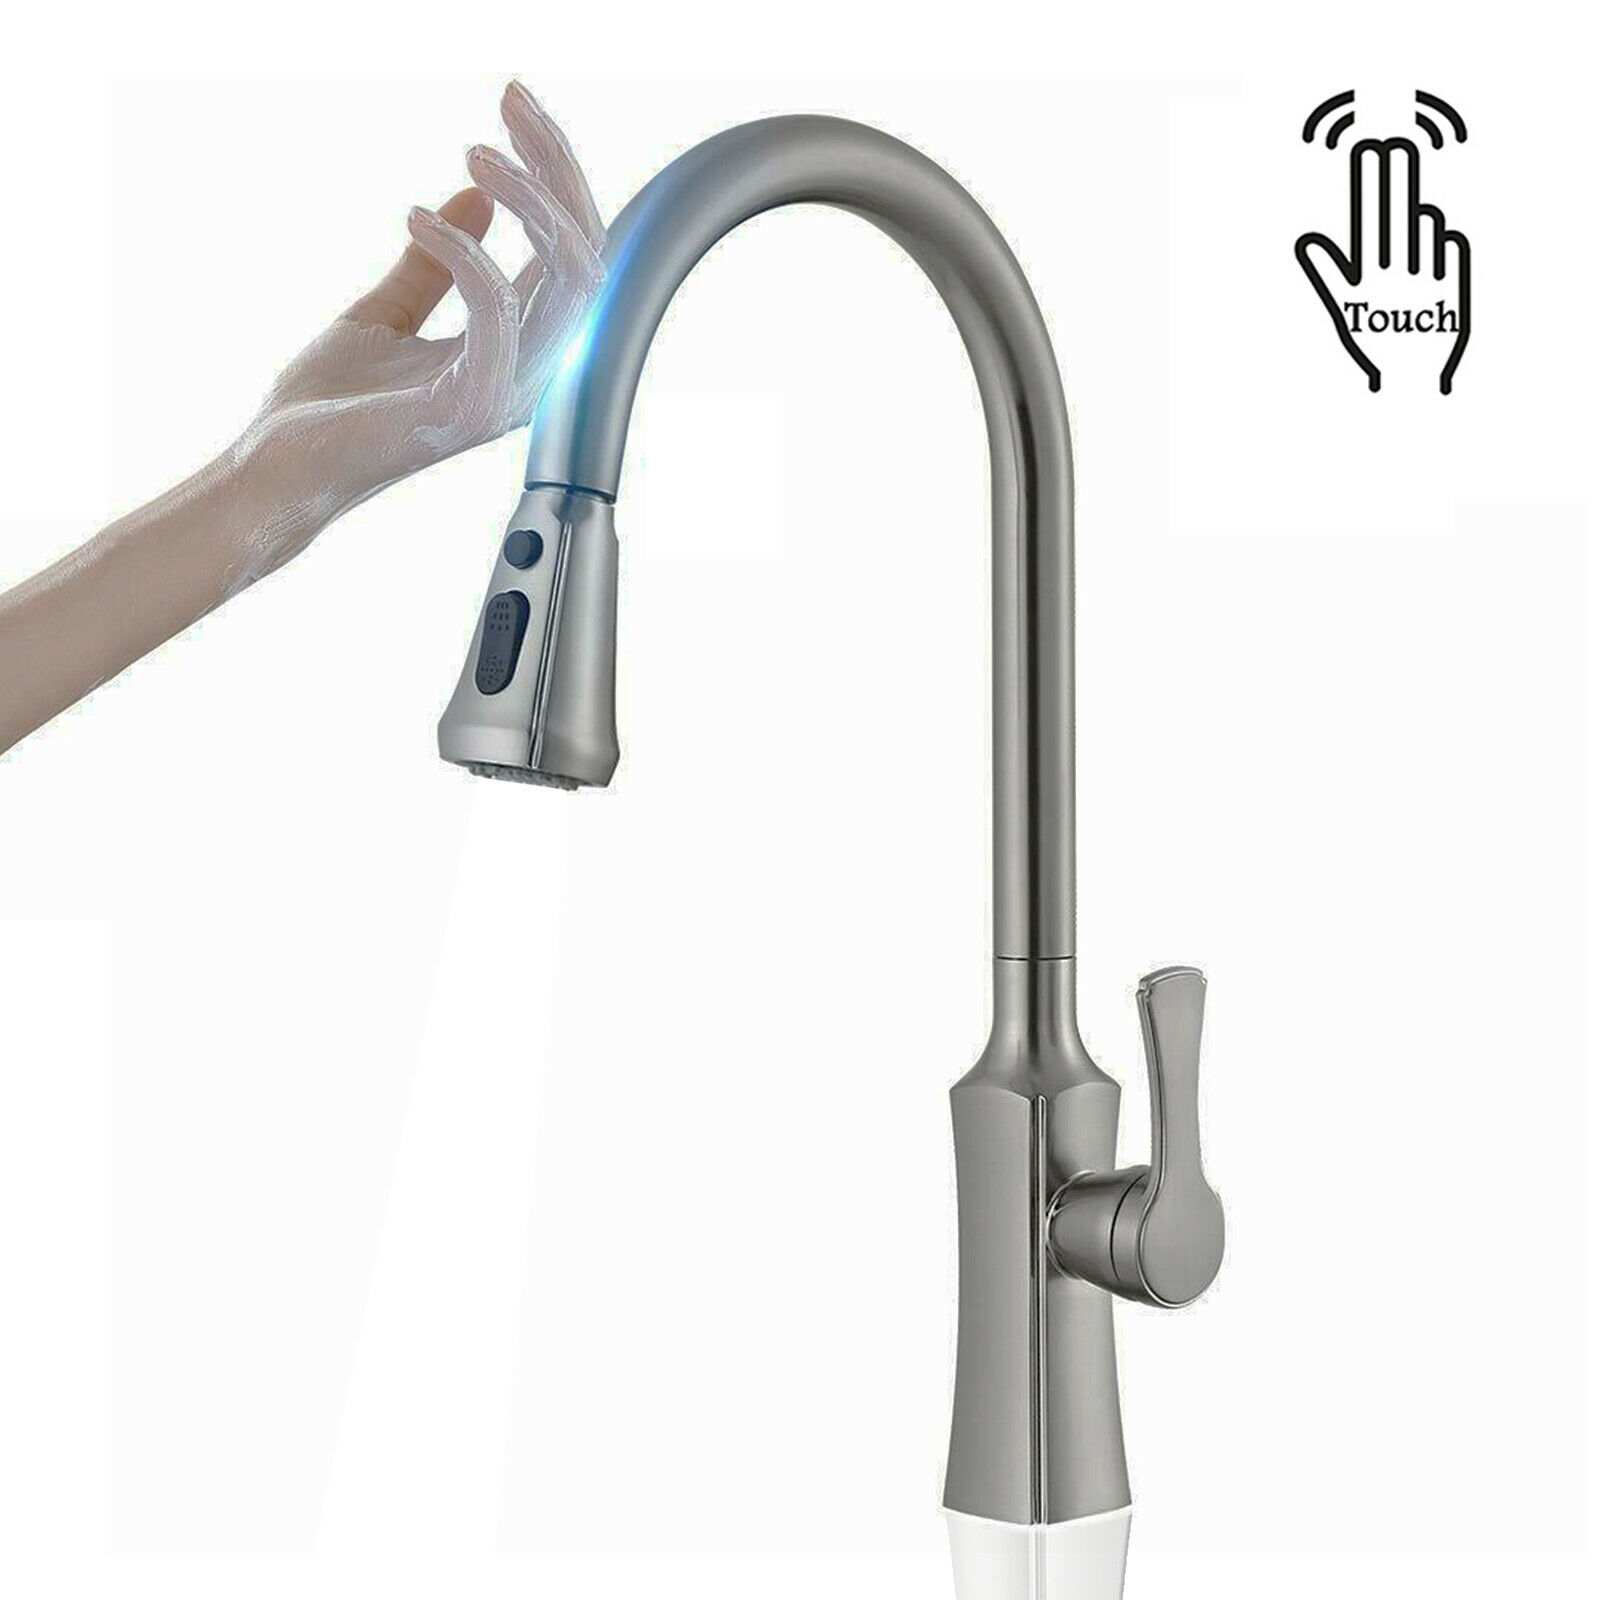 Brushed Sensor Touch On Kitchen Sink Faucet Single Hand Pull Out Spryer Faucets